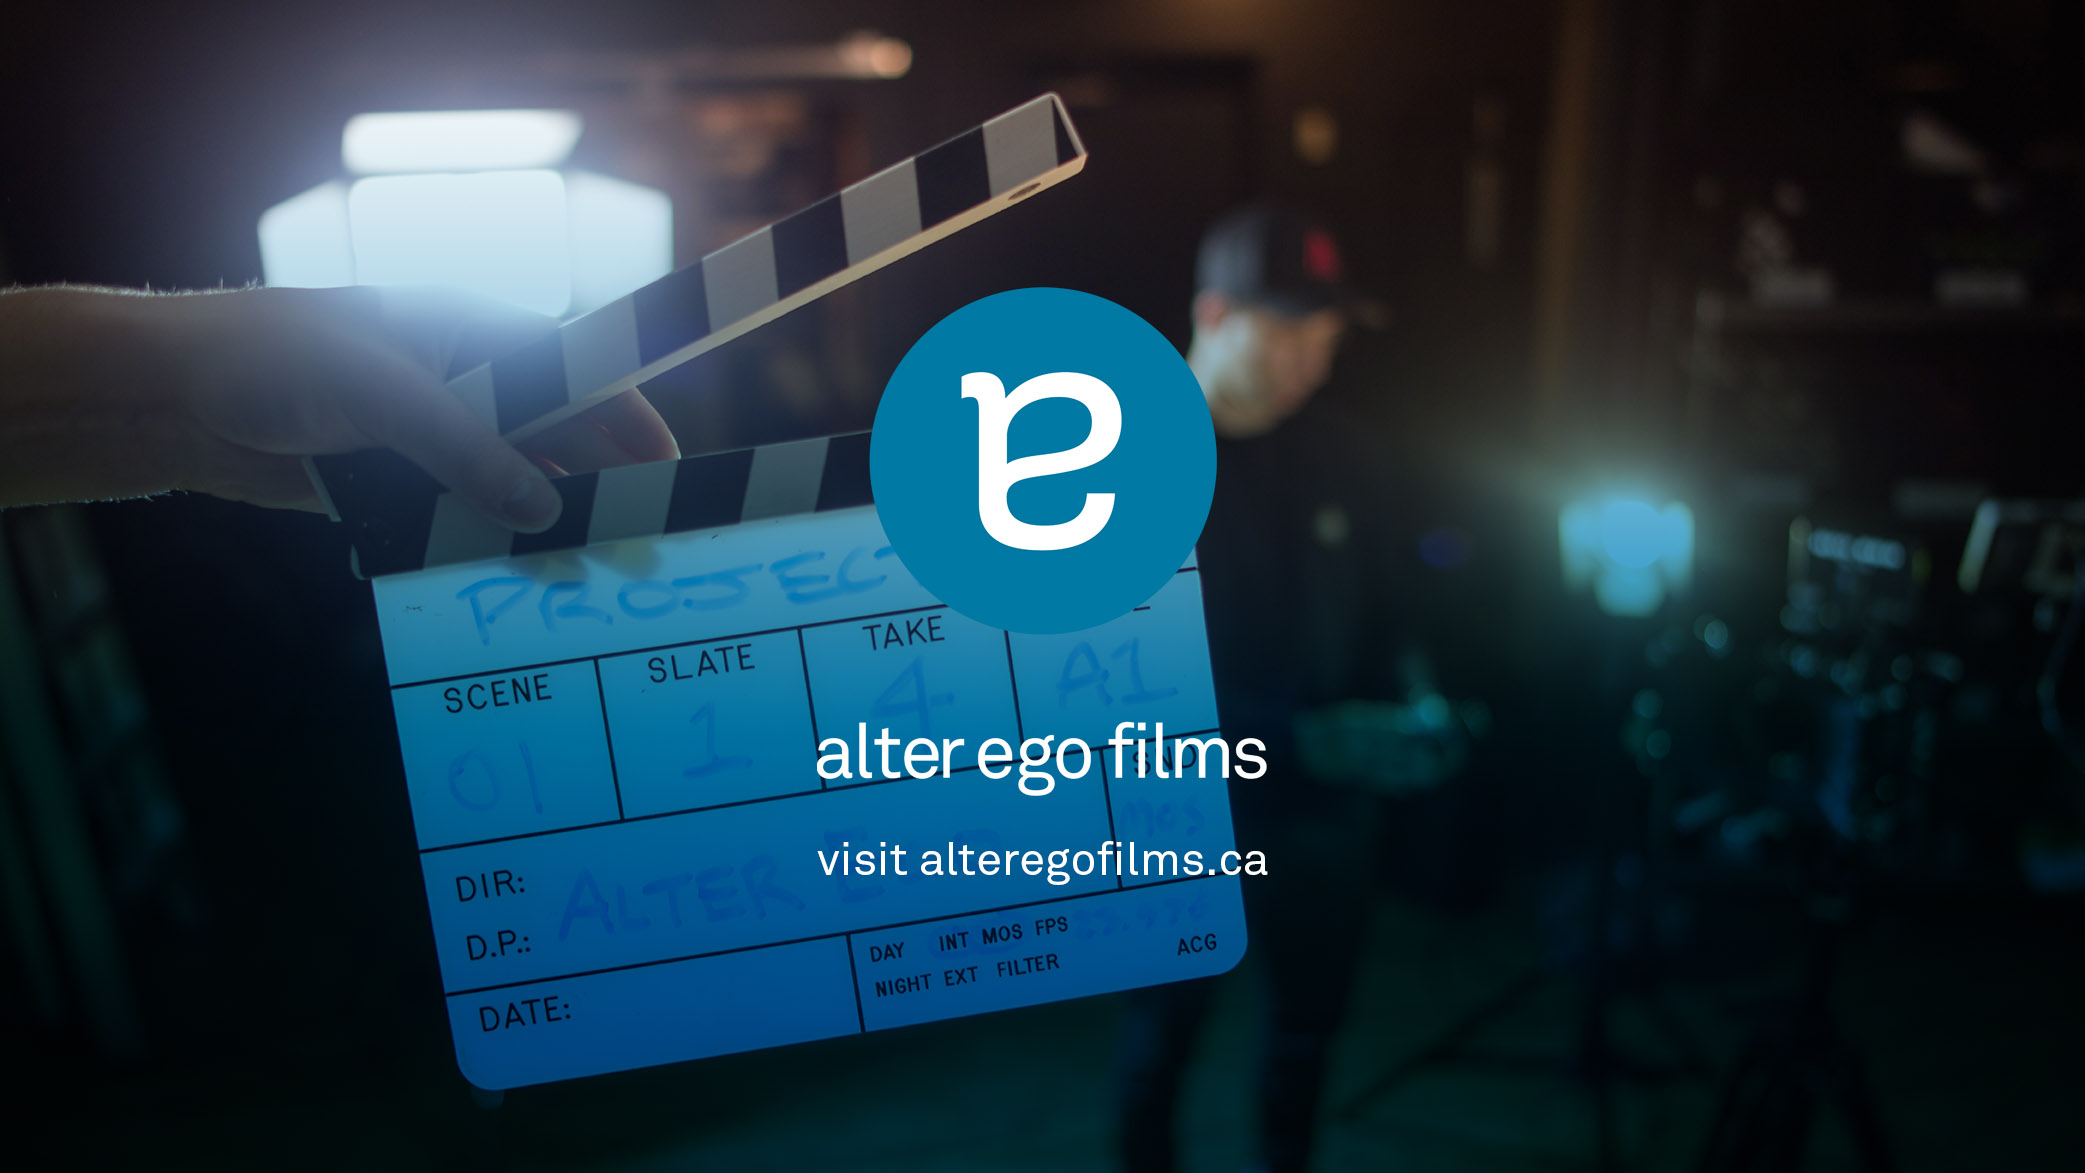 Link to alter ego films